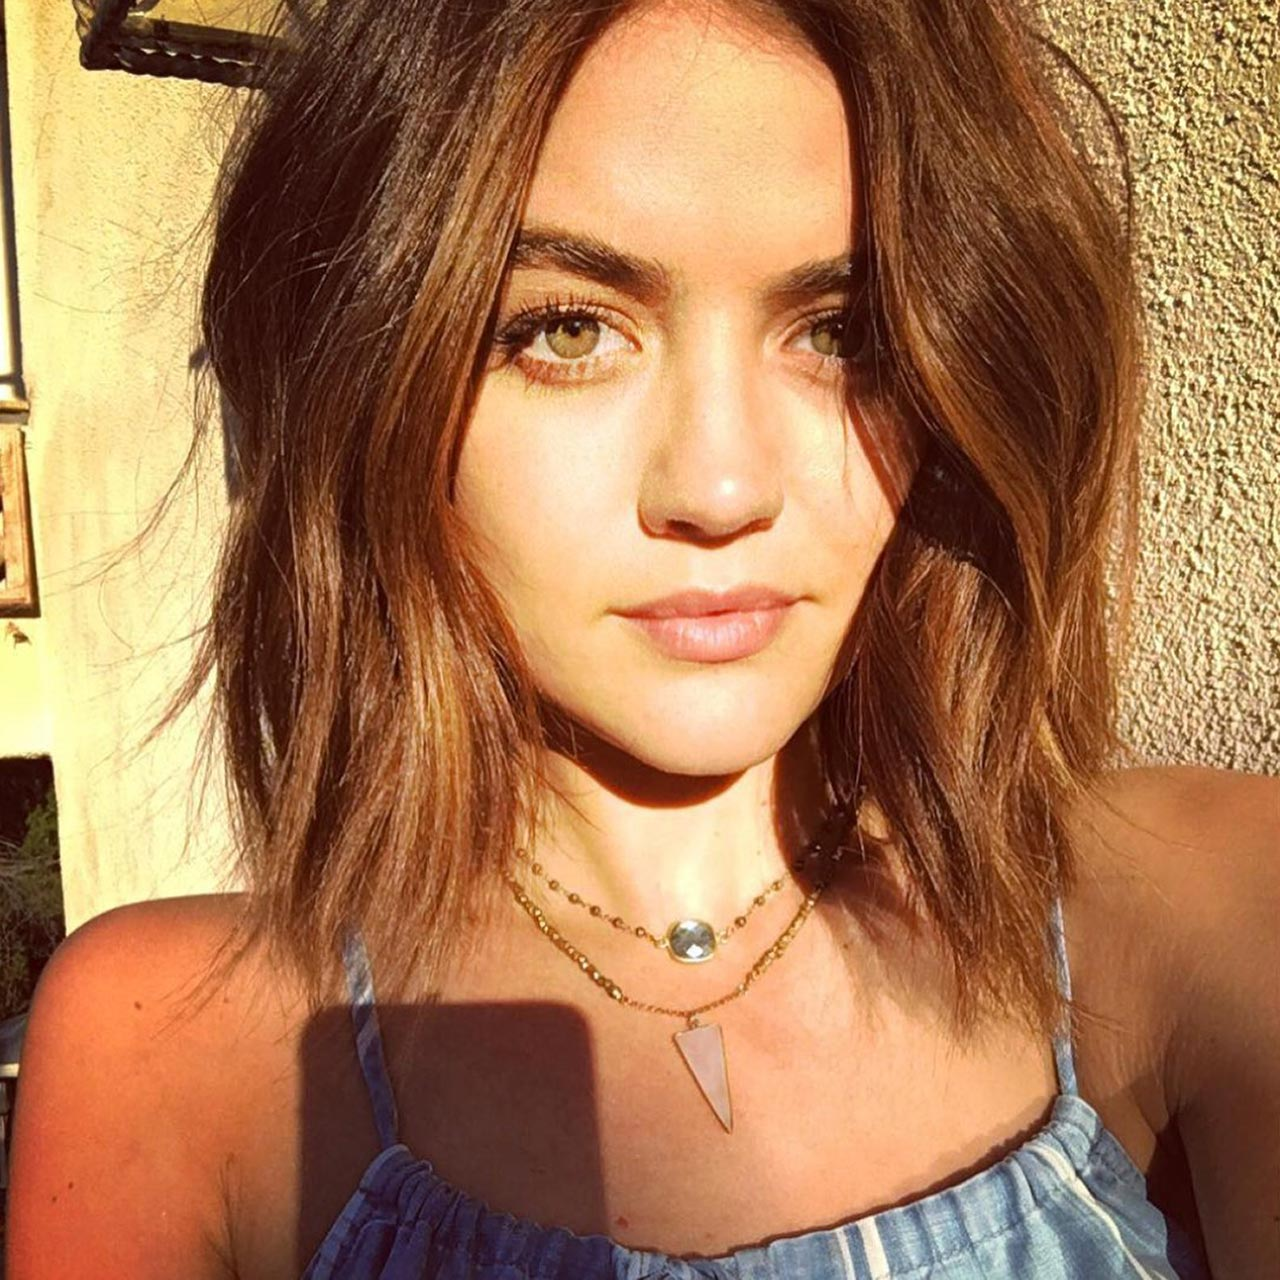 Little liars lucy hale pretty